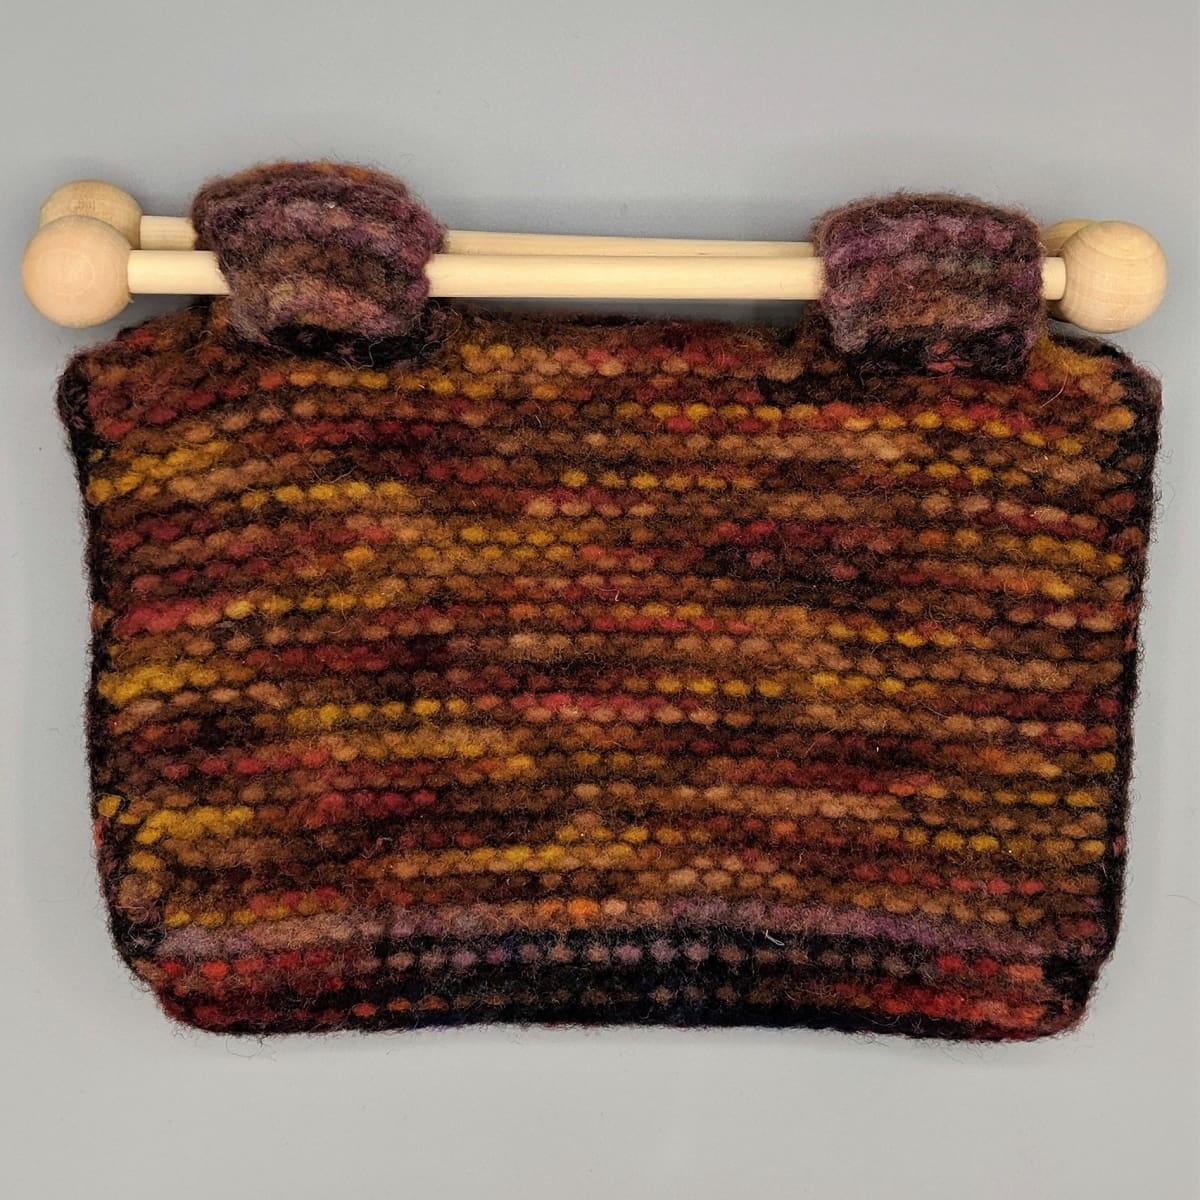 Felted Purse - Knitted Sample - 3 - Handmade